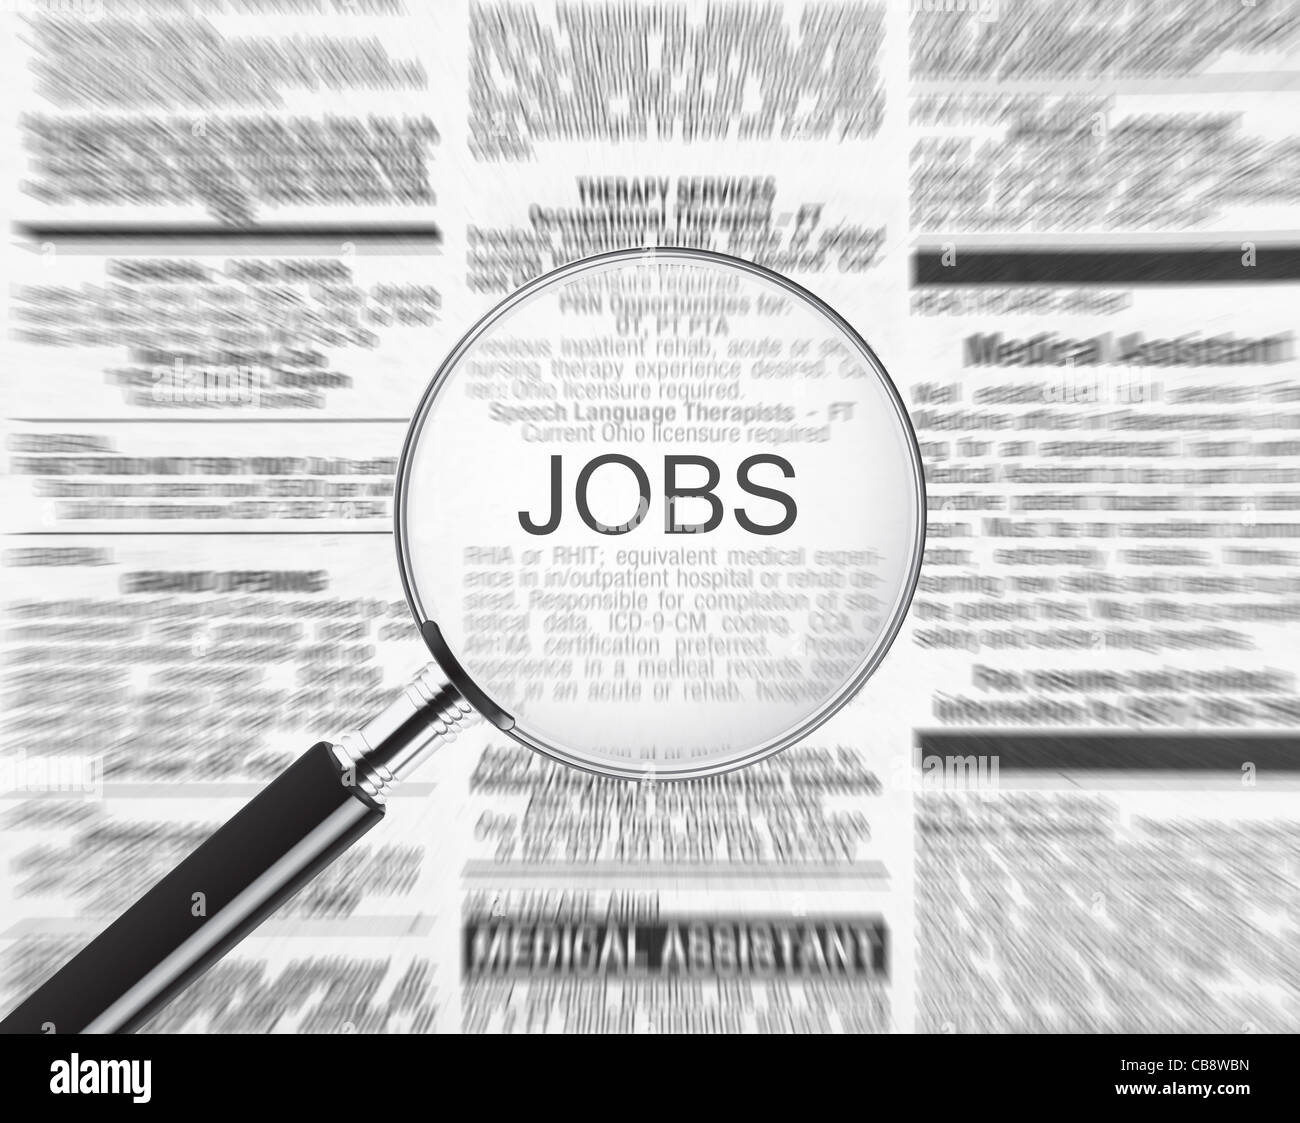 Jobs ad through a magnifying glass - Stock Image